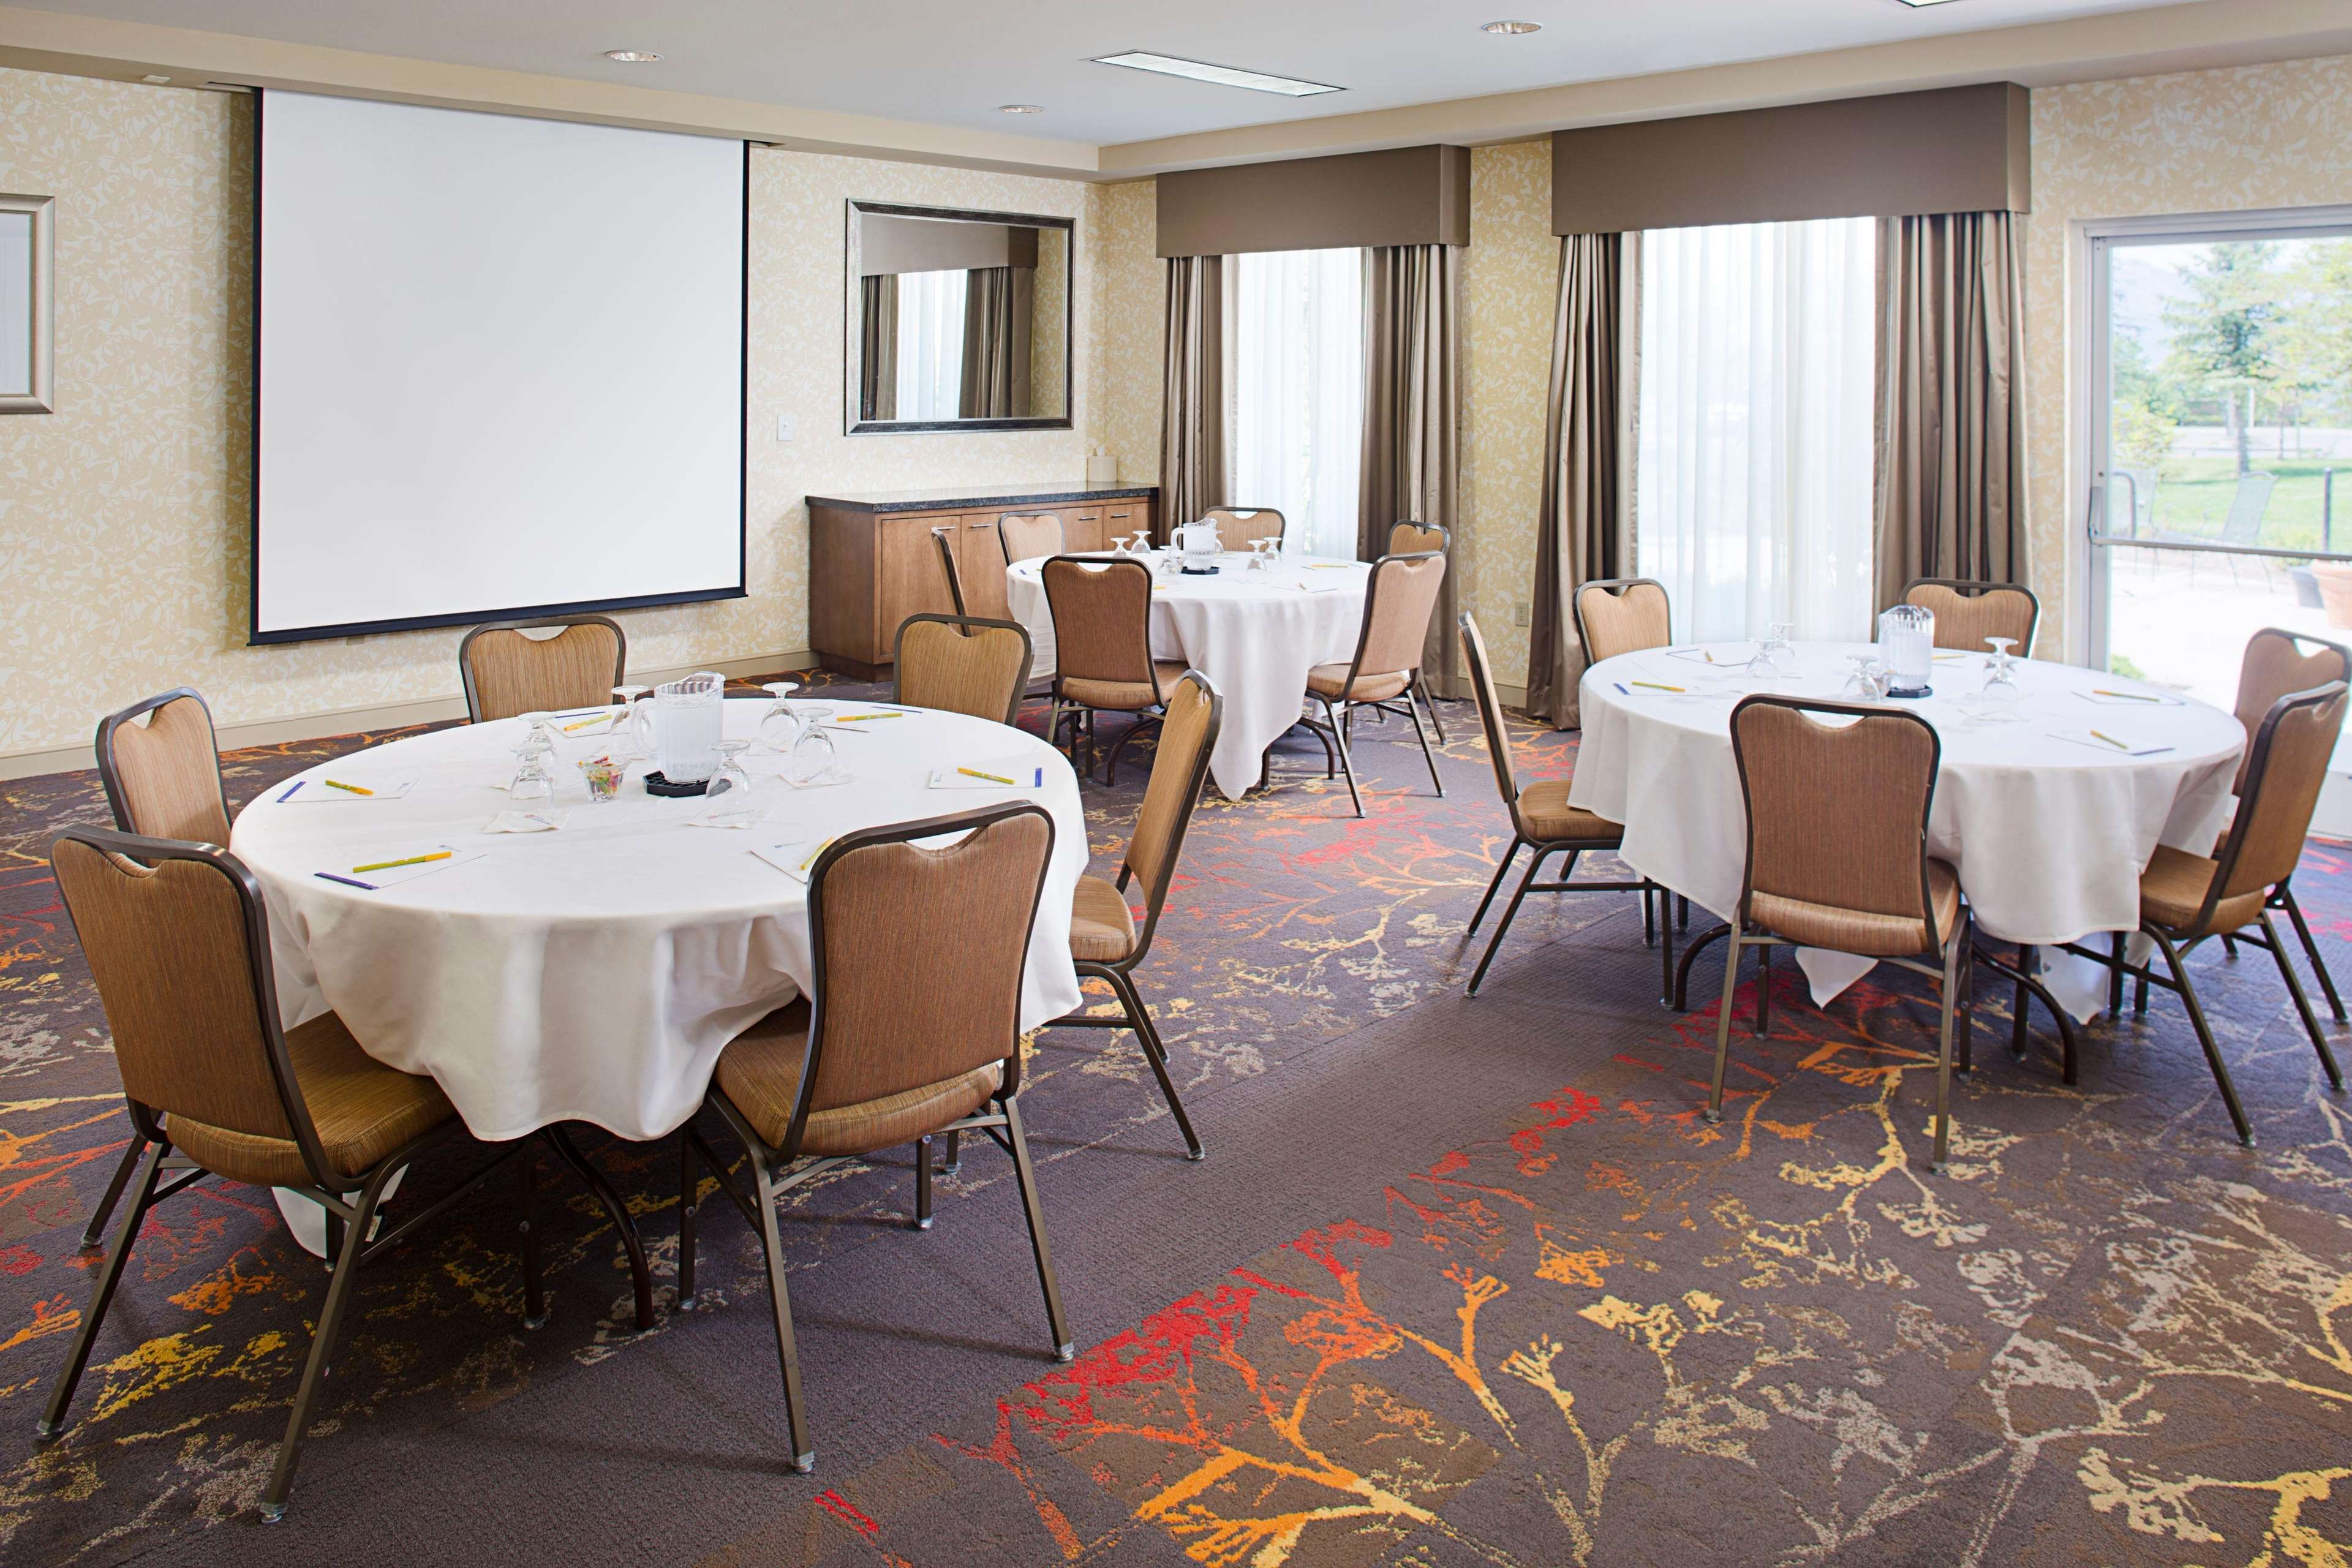 For Maps And Directions To Hilton Garden Inn Colorado Springs View The Map  To The Right. For Reviews Of Hilton Garden Inn Colorado Springs See Below.